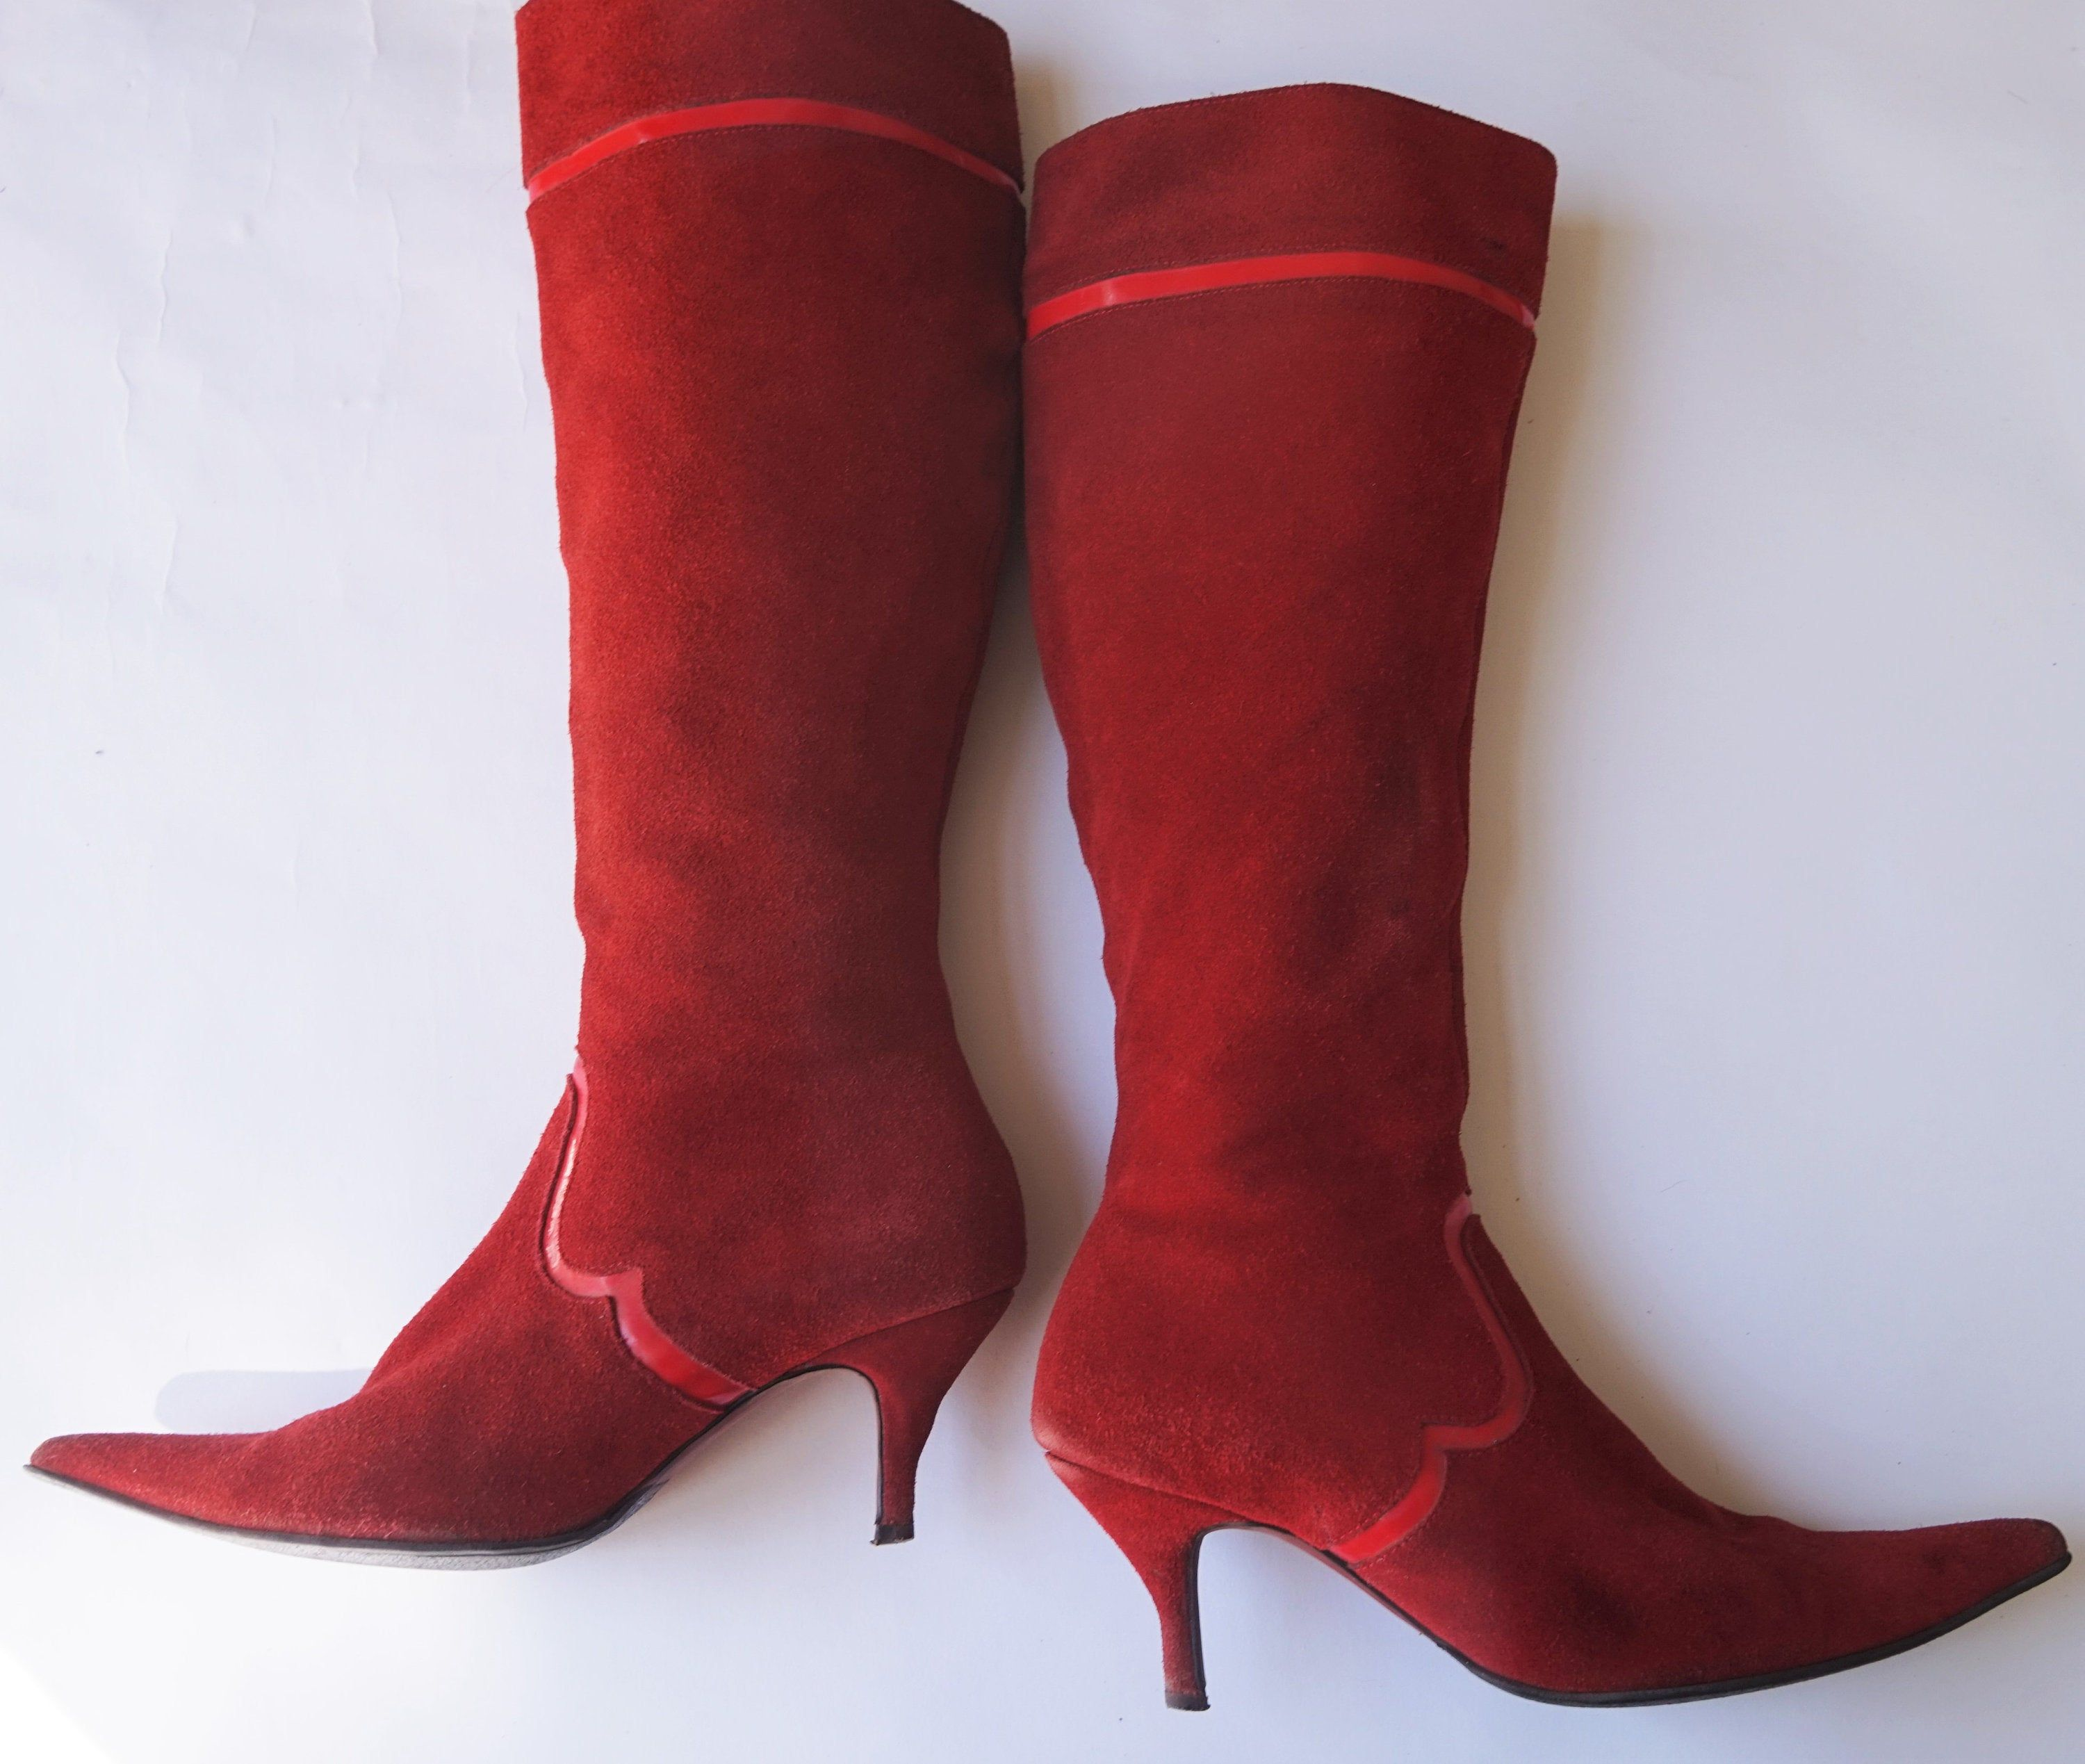 Red Suede Leather Pointy Boots Kitten Heels By Friis And Company Size Eur40 Uk7 Us9